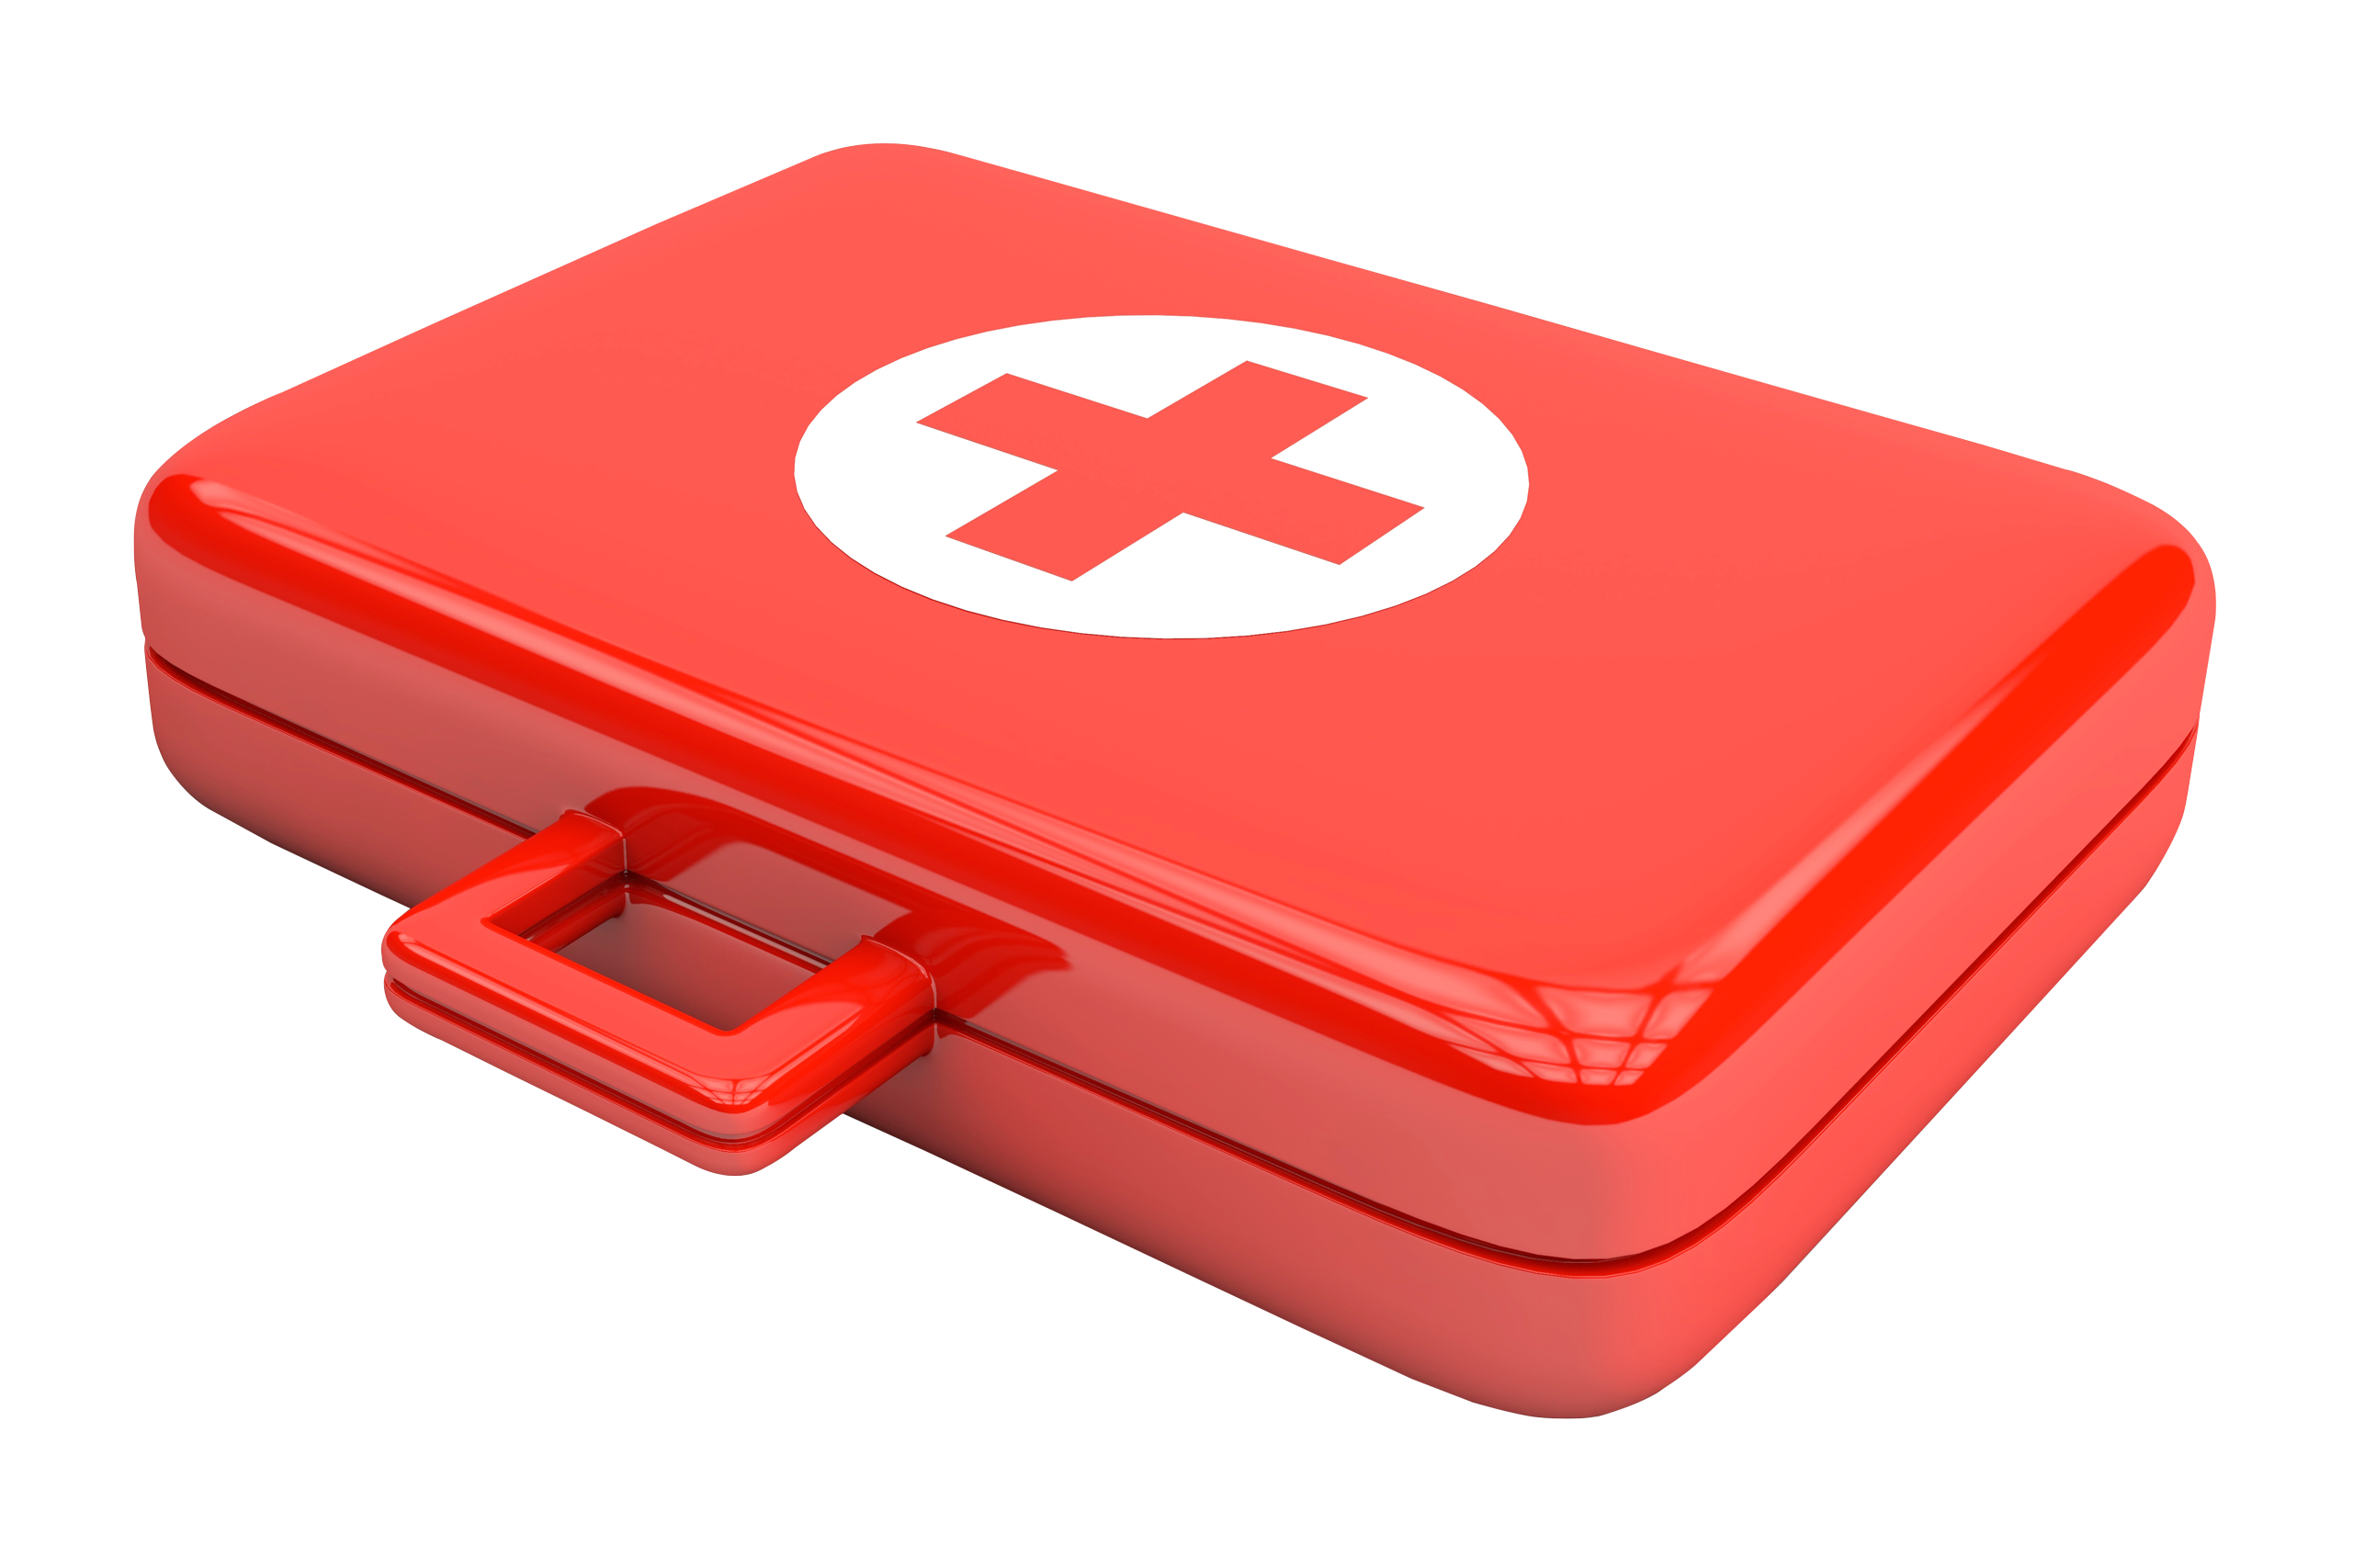 Health clipart first aid cross. Medical png images pngpix